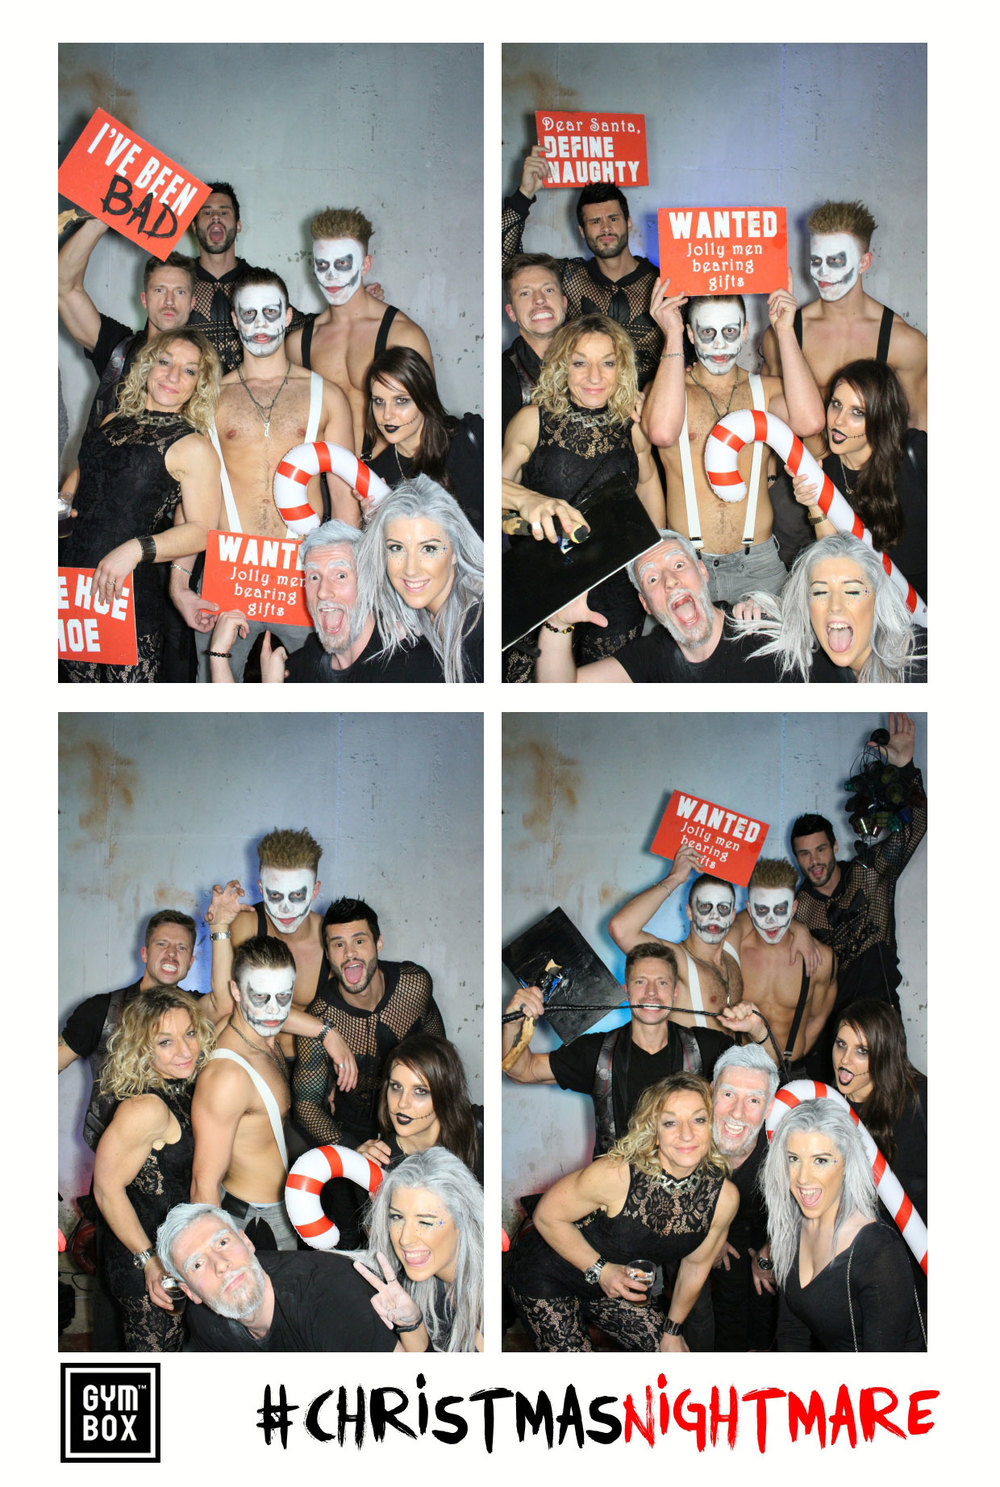 The-London-Lightbox-Gymbox-Photobooth.jpg